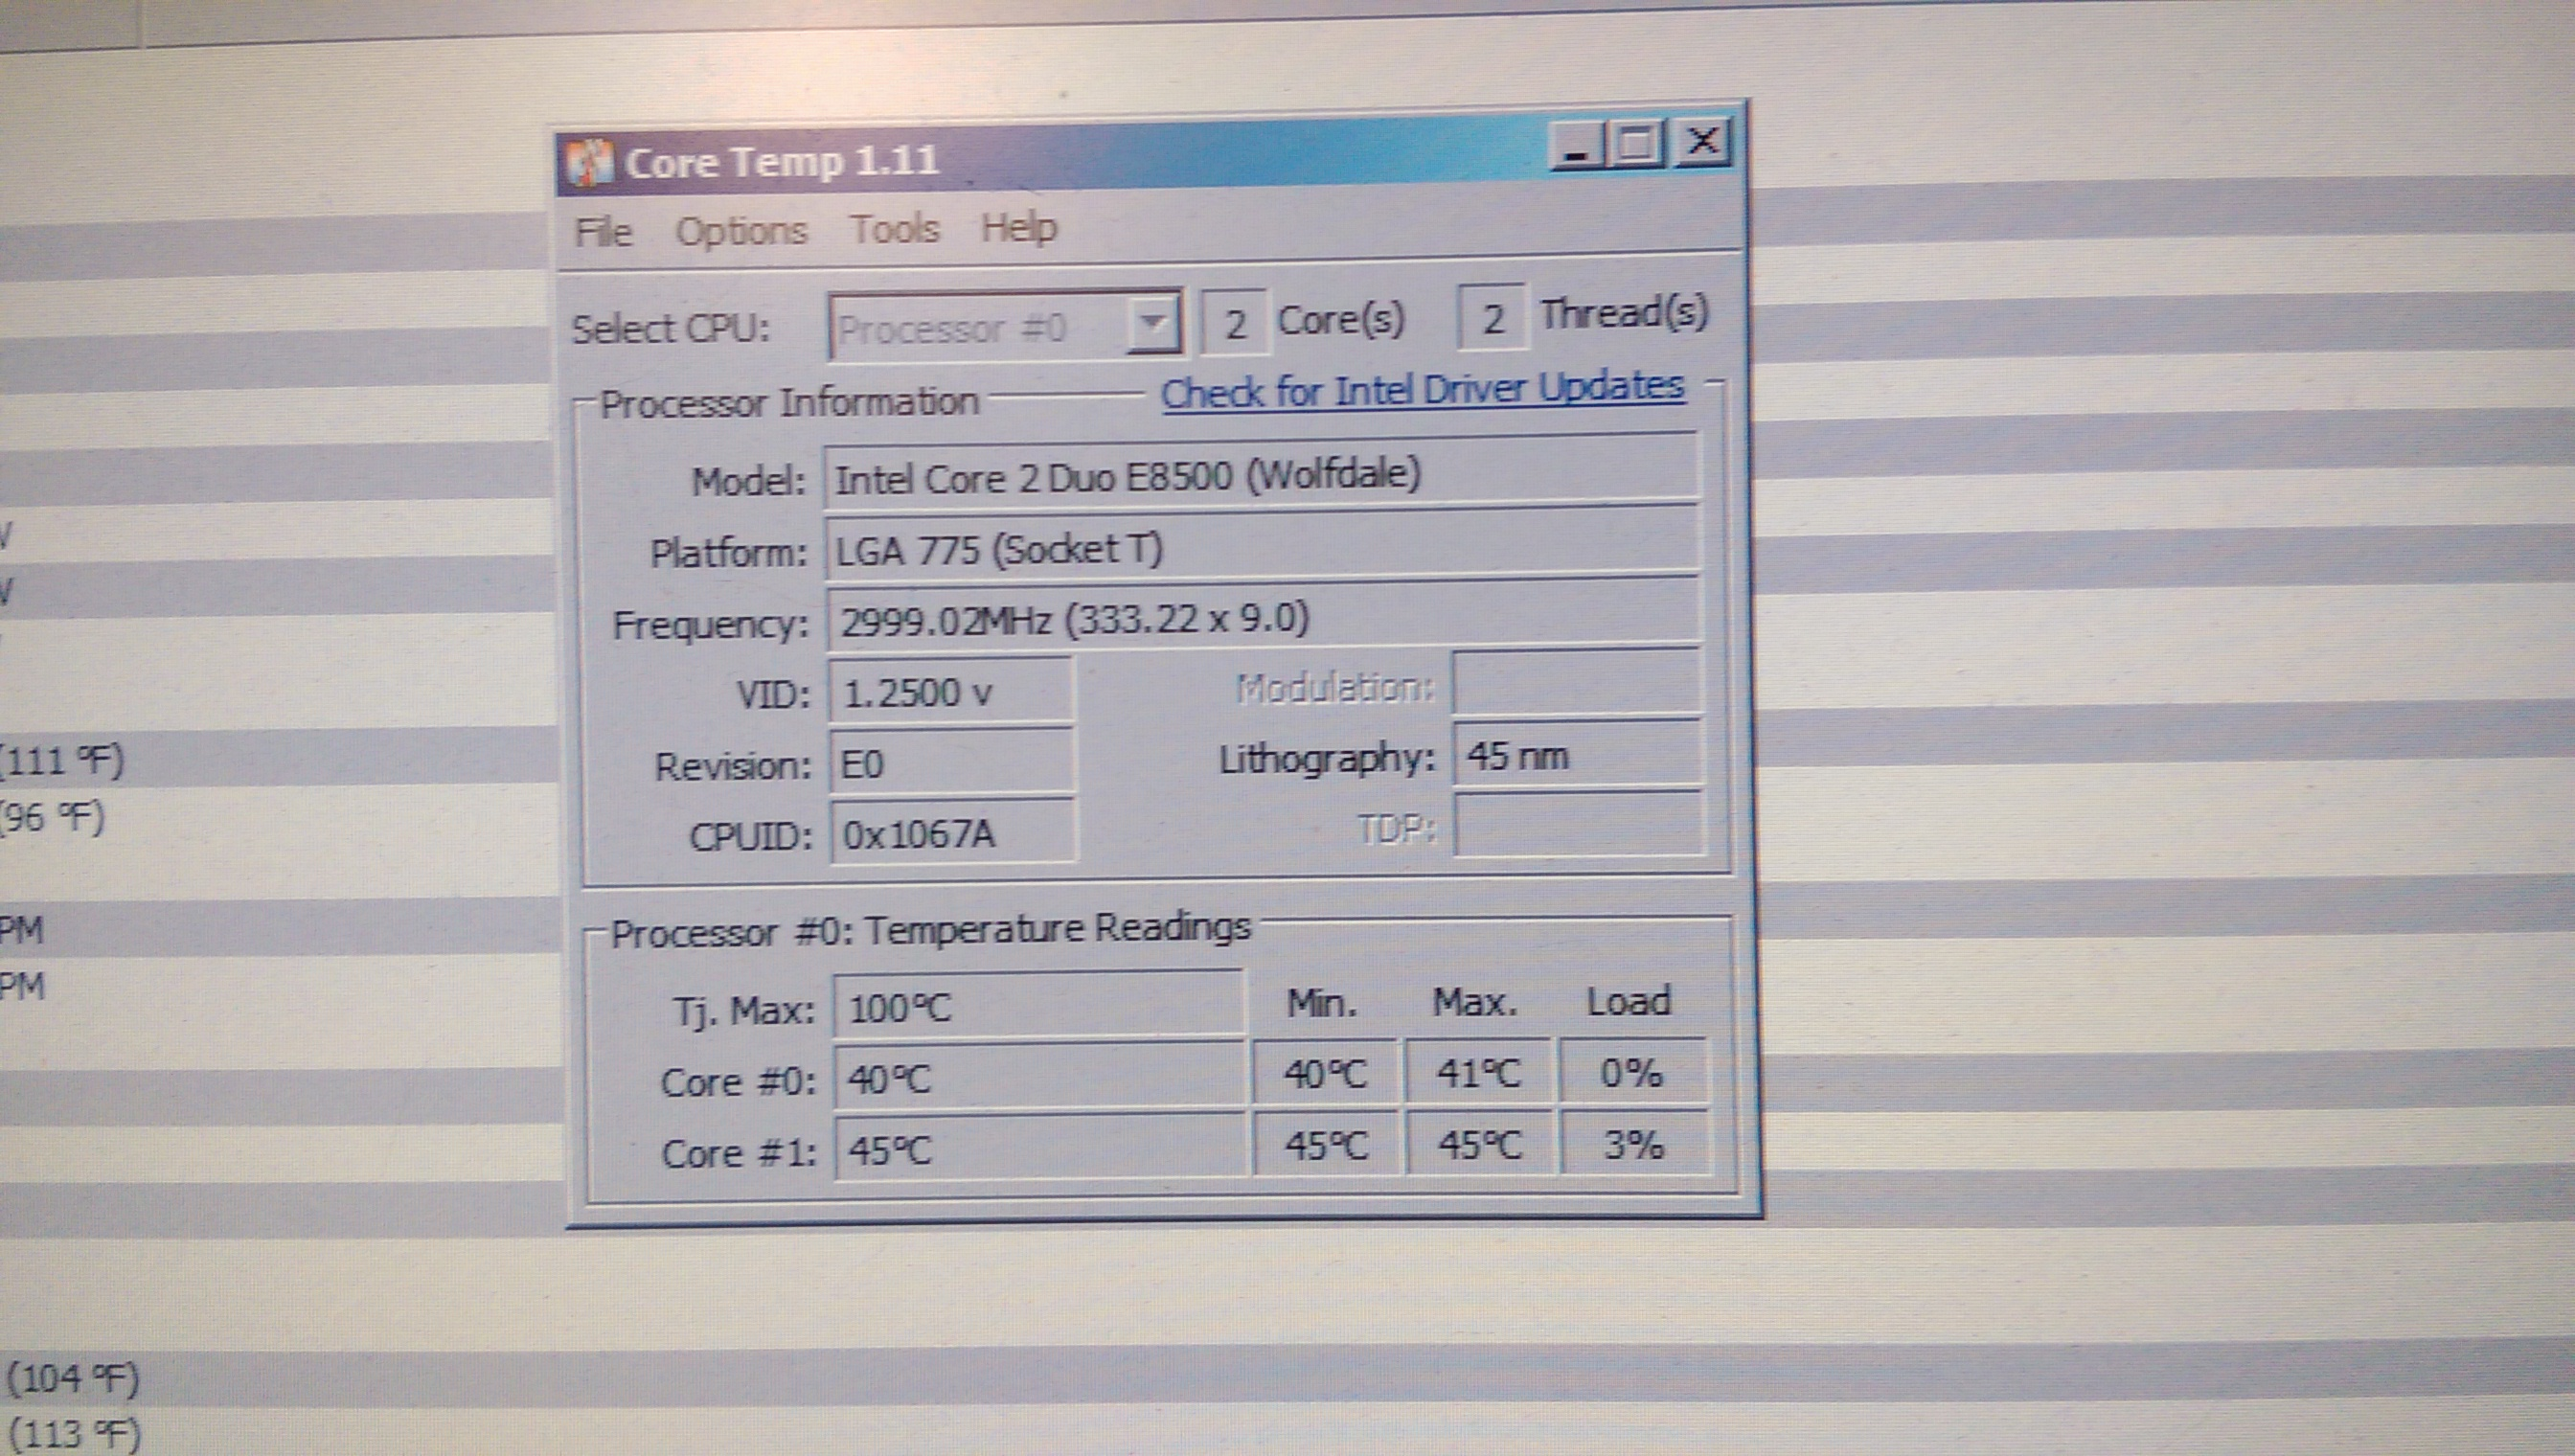 Are These Temps Ok For An E8500 At Stock Speeds Prosesor Reason Im Asking This Is Not Sure If I Applied To Much Thermal Paste When Put The New Cpu Cooler On